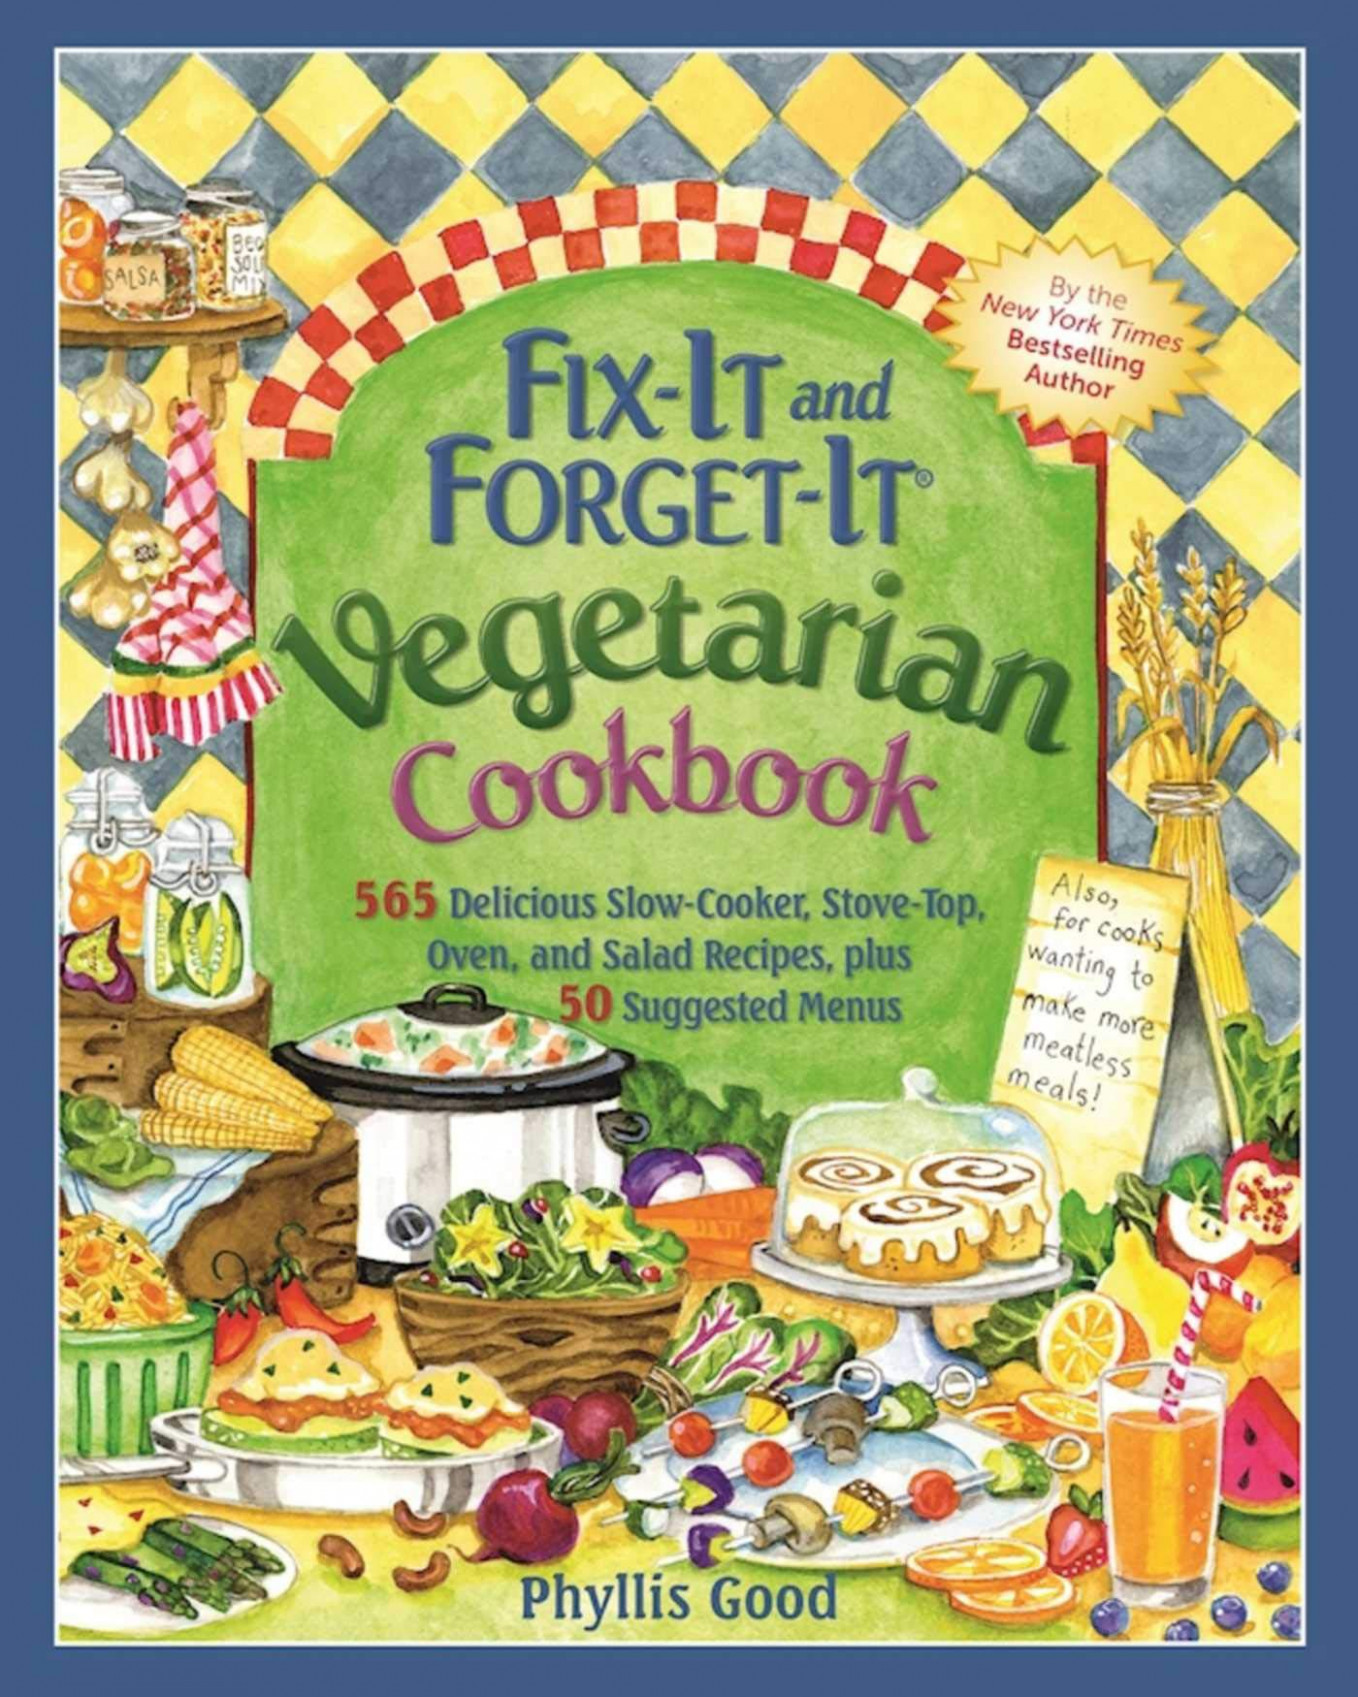 Fix-It and Forget-It Vegetarian Cookbook: 11 Delicious Slow ..